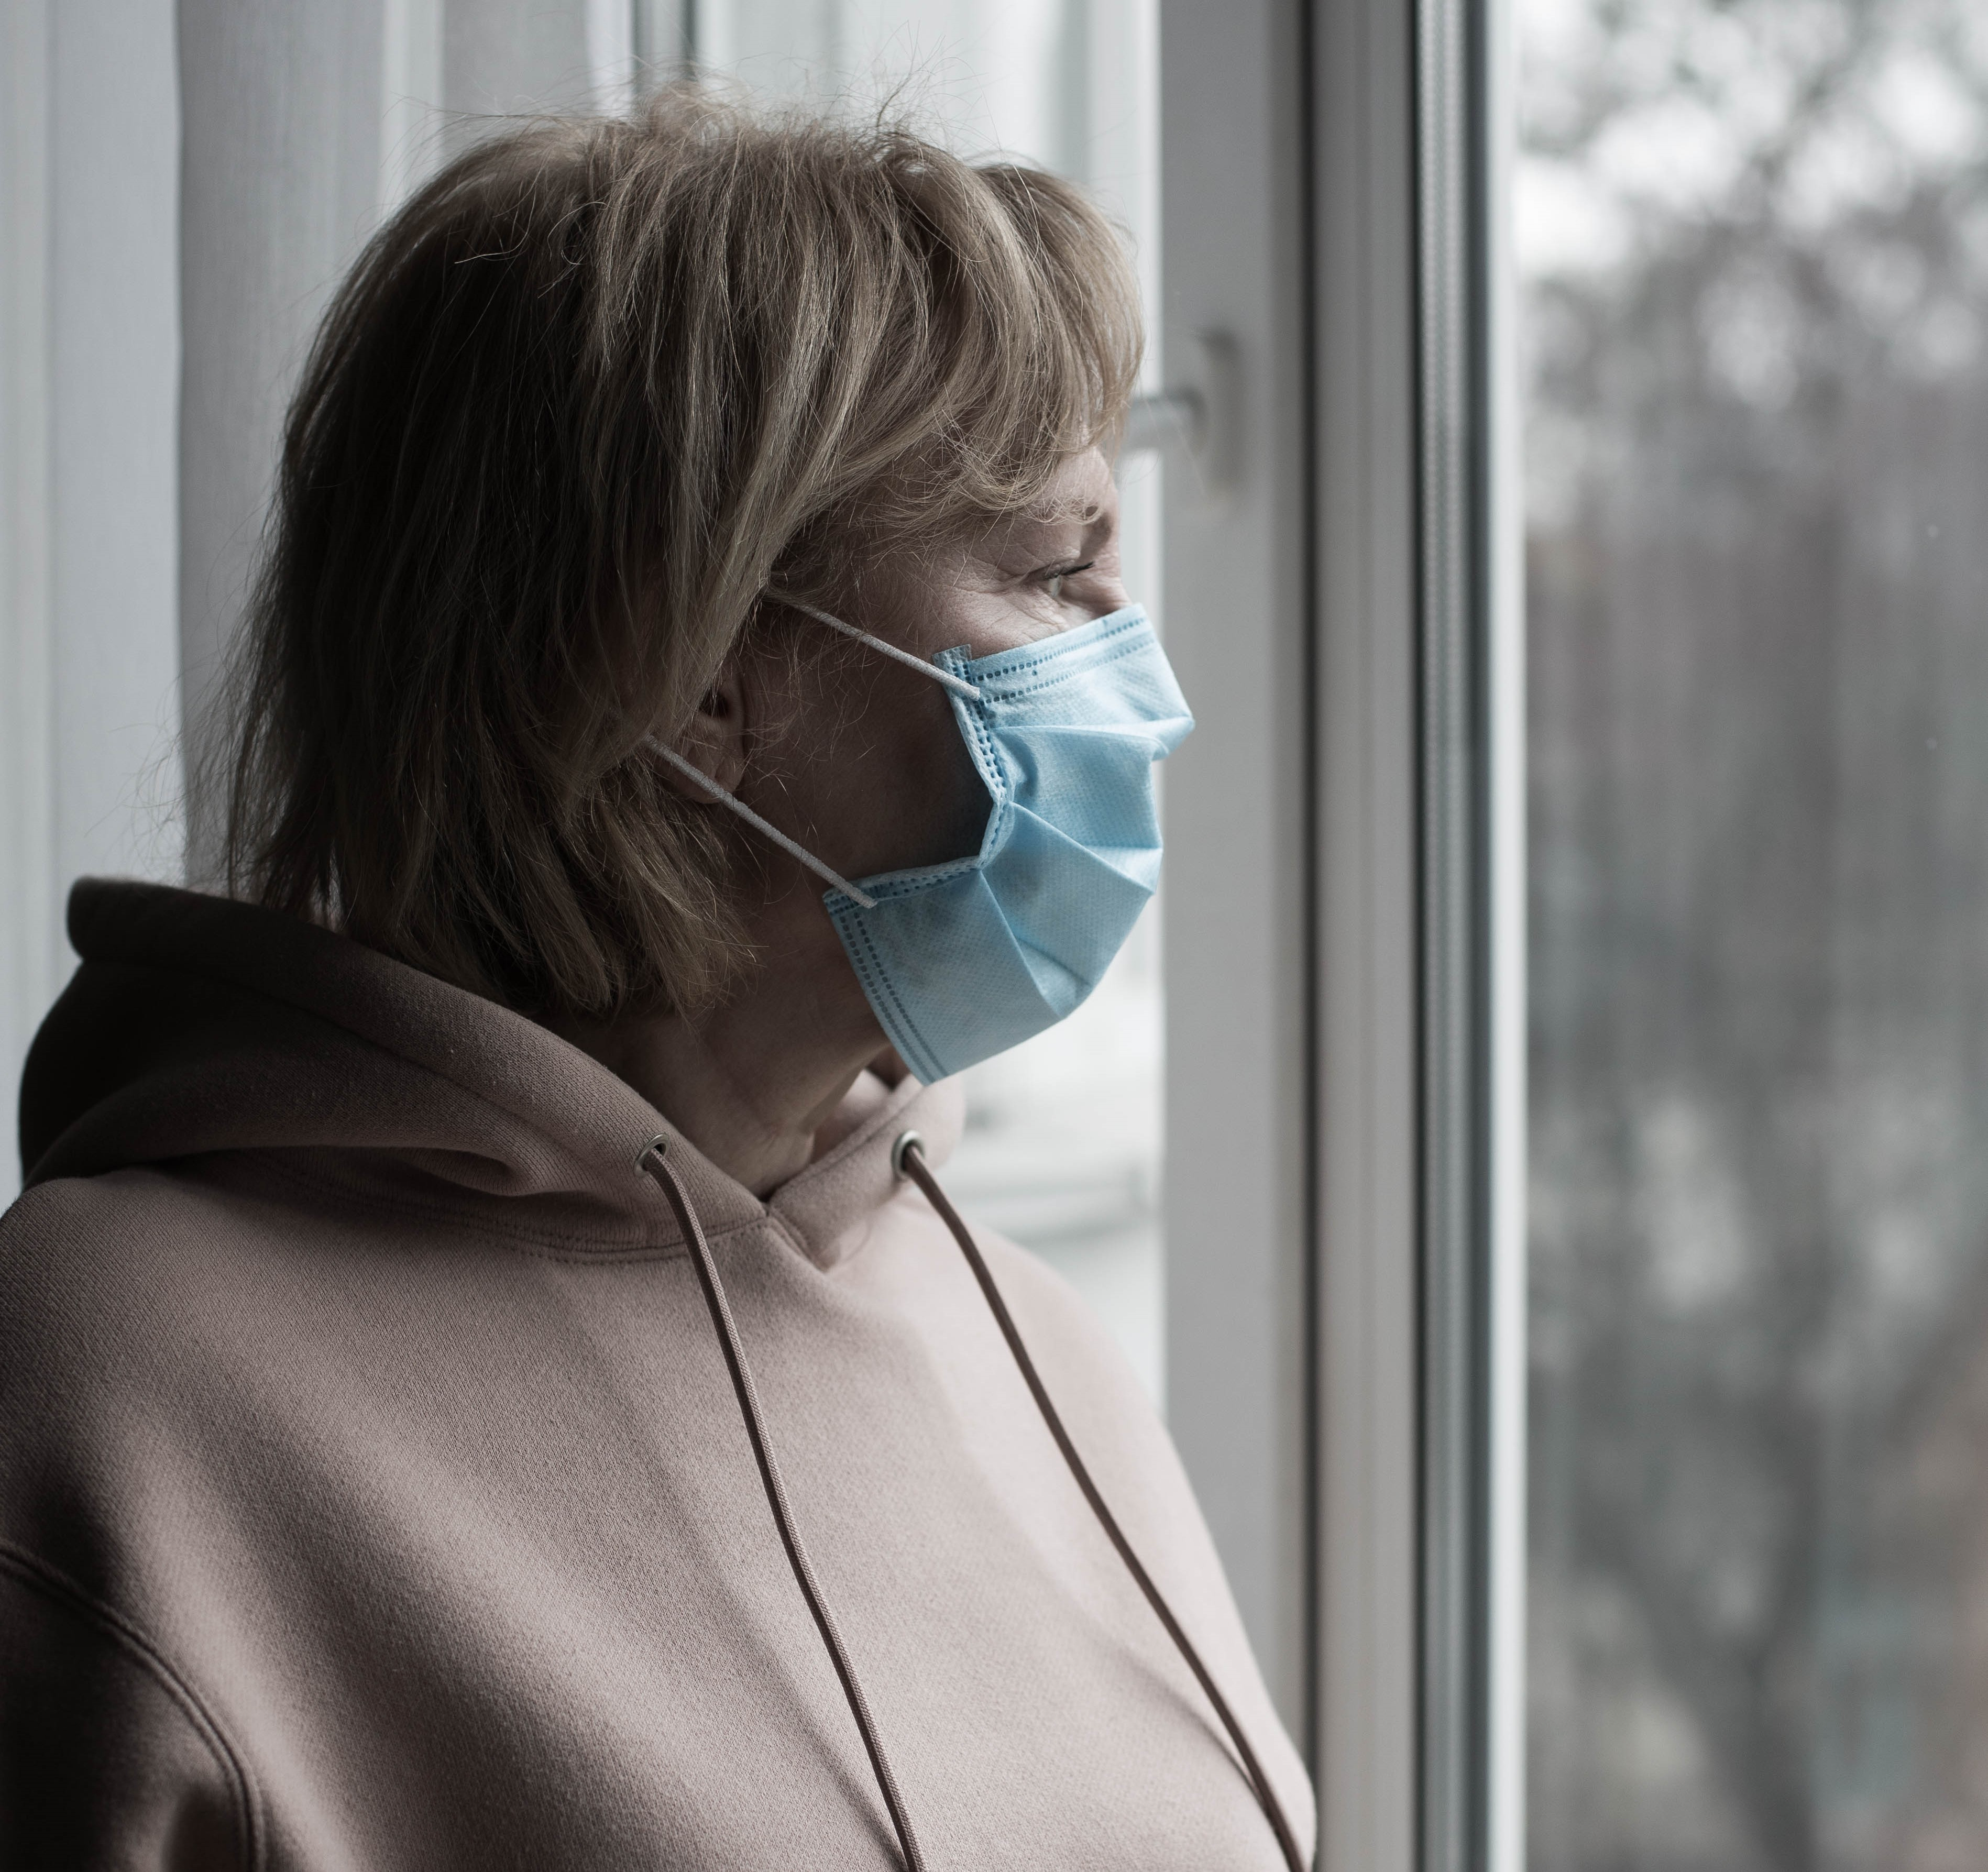 A woman wearing a surgical mask which does not seal around the edges